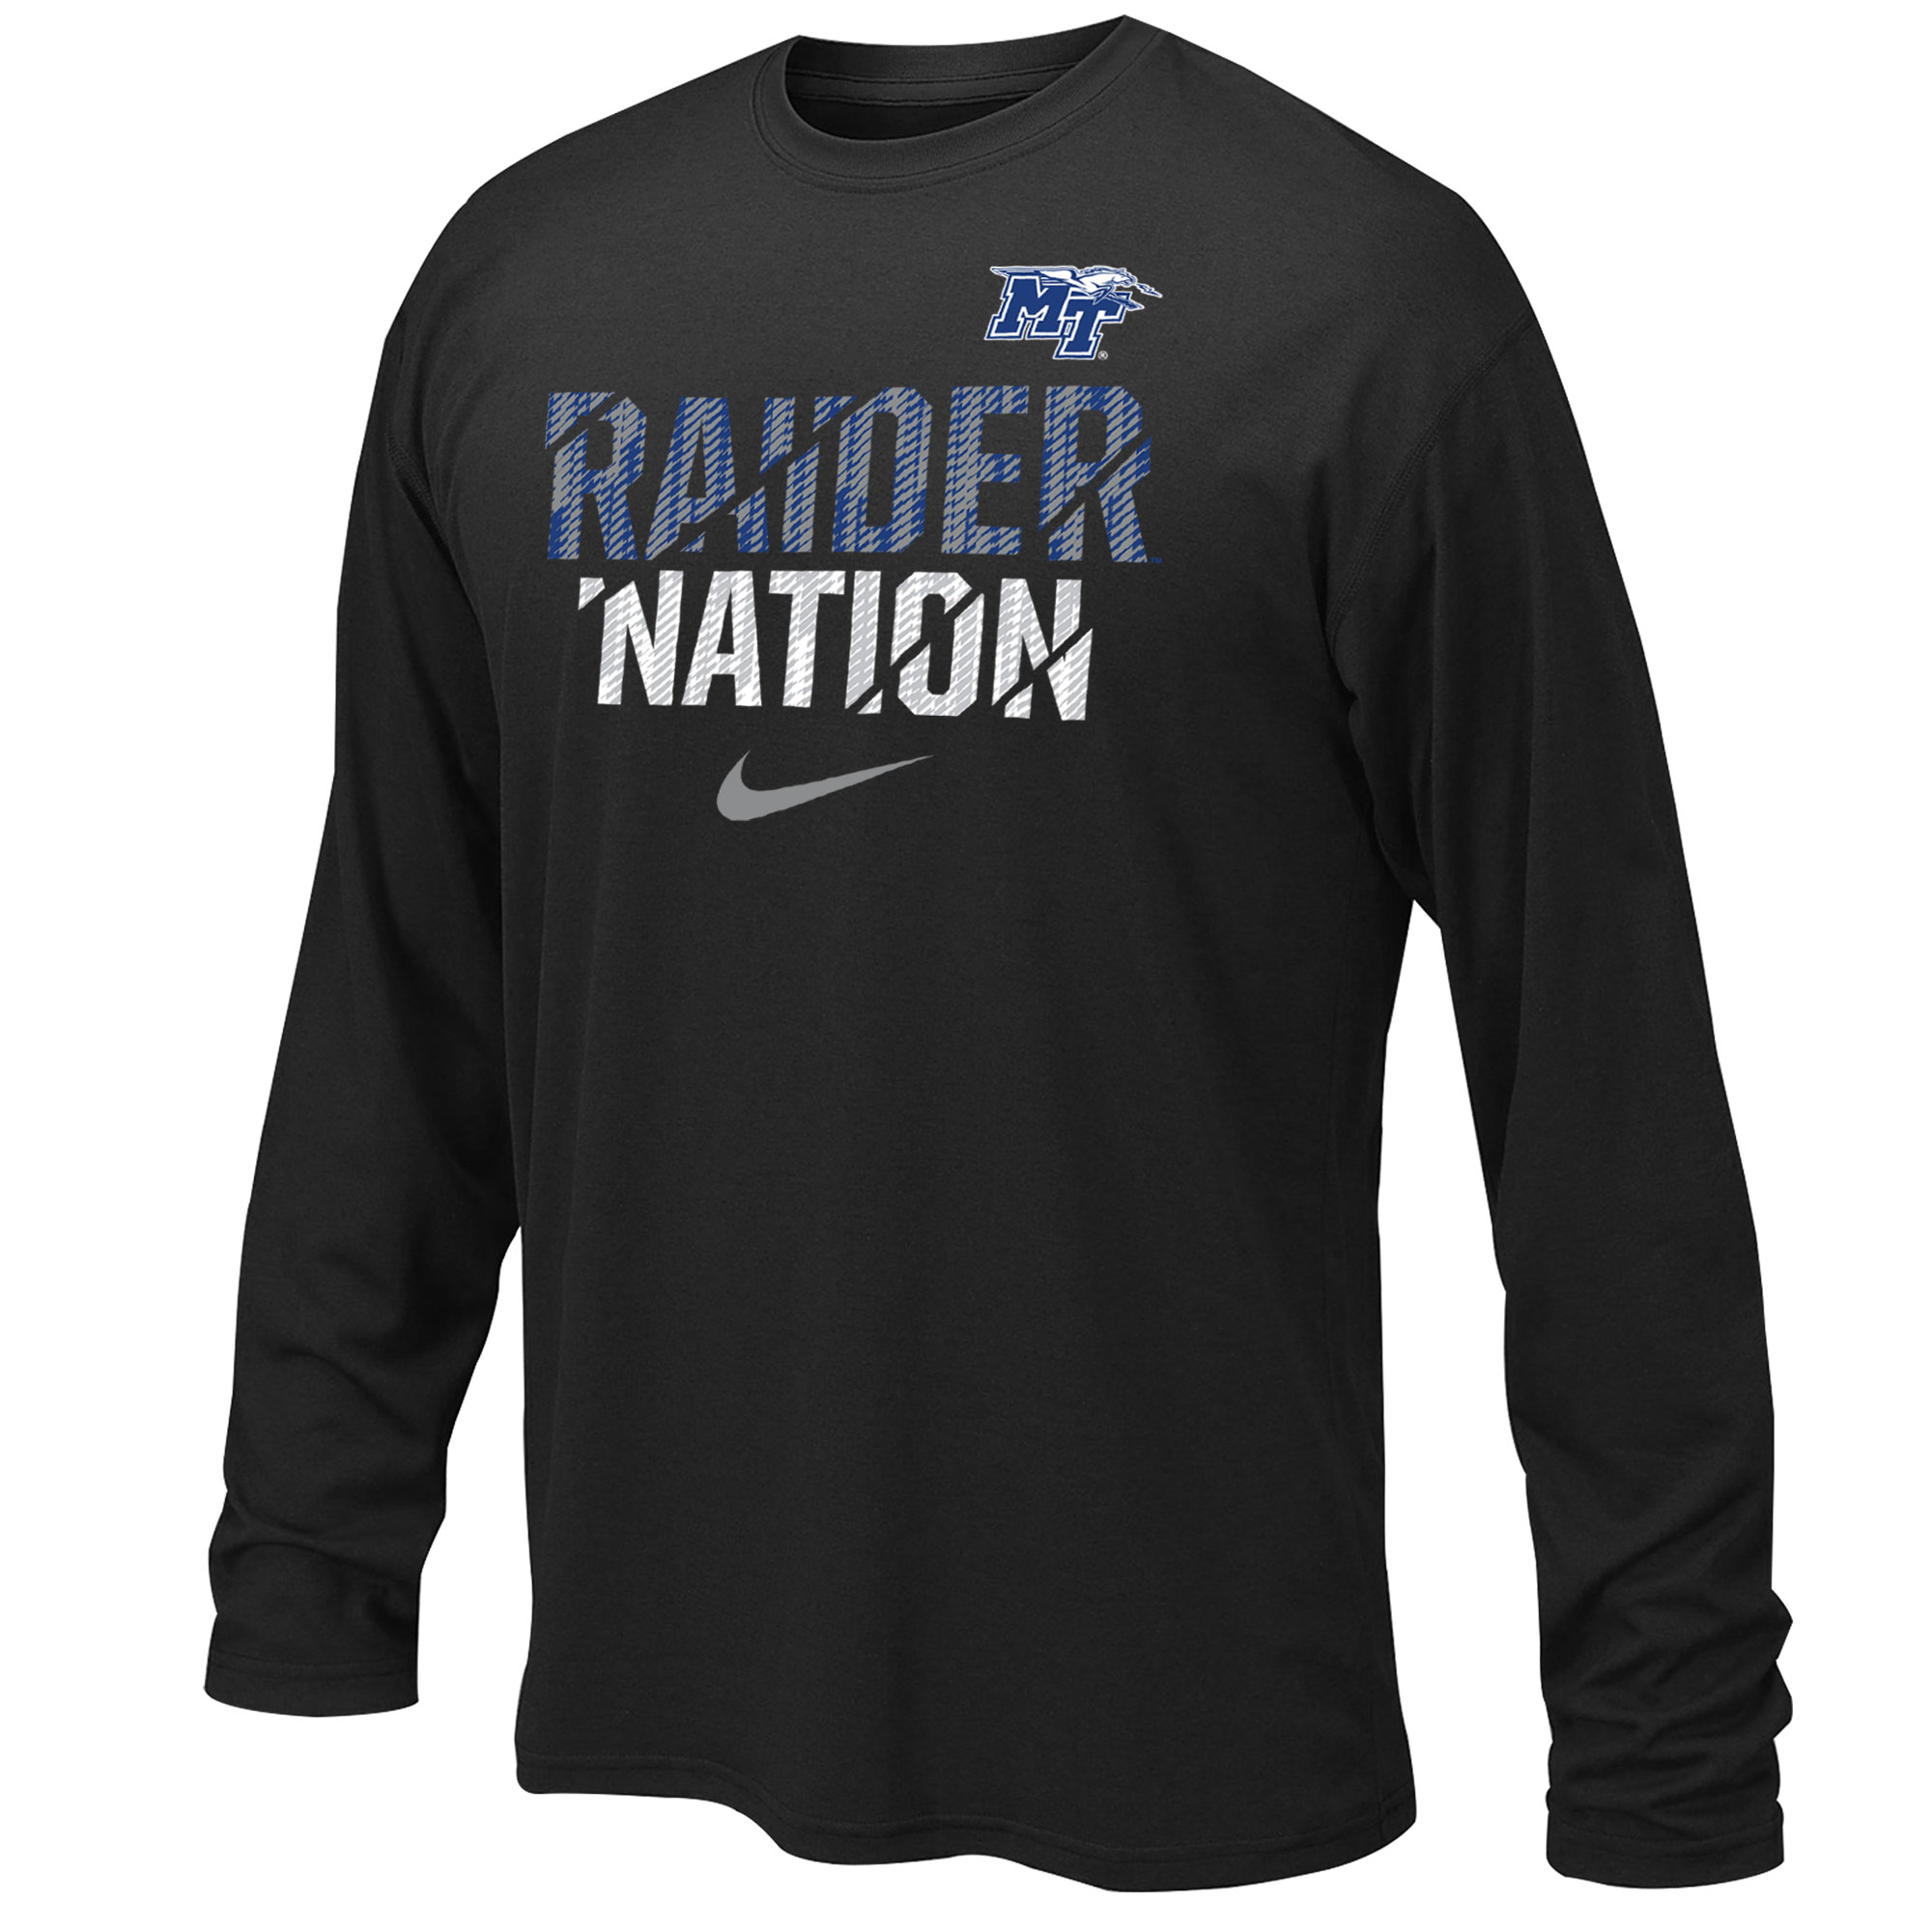 Youth Raider Nation Dri-Fit Long Sleeve Shirt